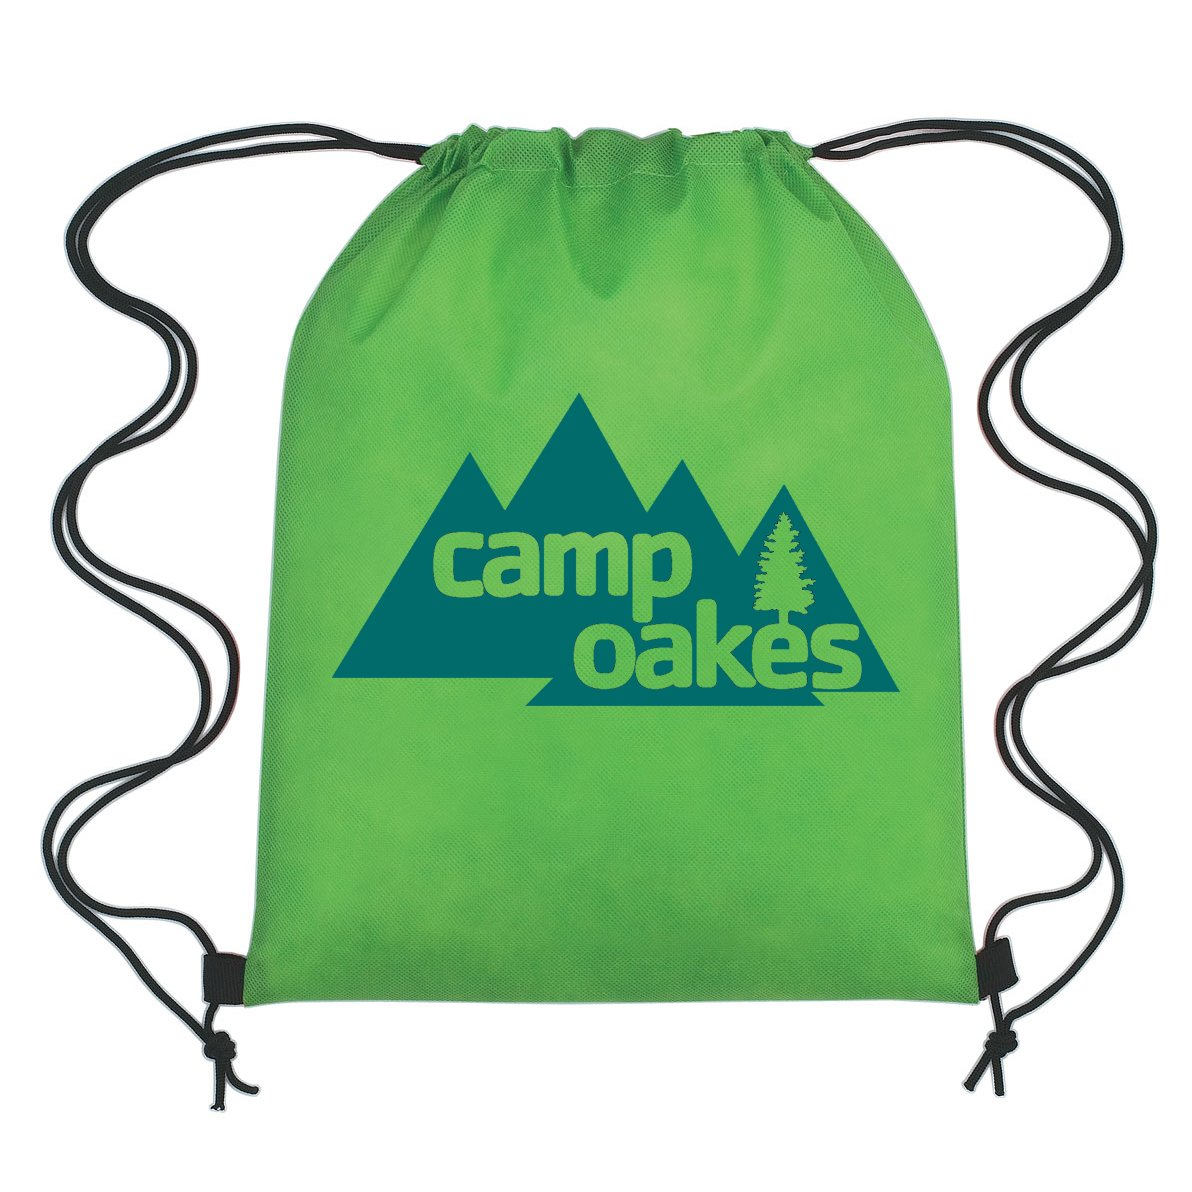 Lime Non-Woven Drawstring Backpacks - 150 Quantity - PROMOTIONAL PRODUCT / BRANDED / BULK / CUSTOMIZED W/ YOUR LOGO - Lime by PrintGlobe